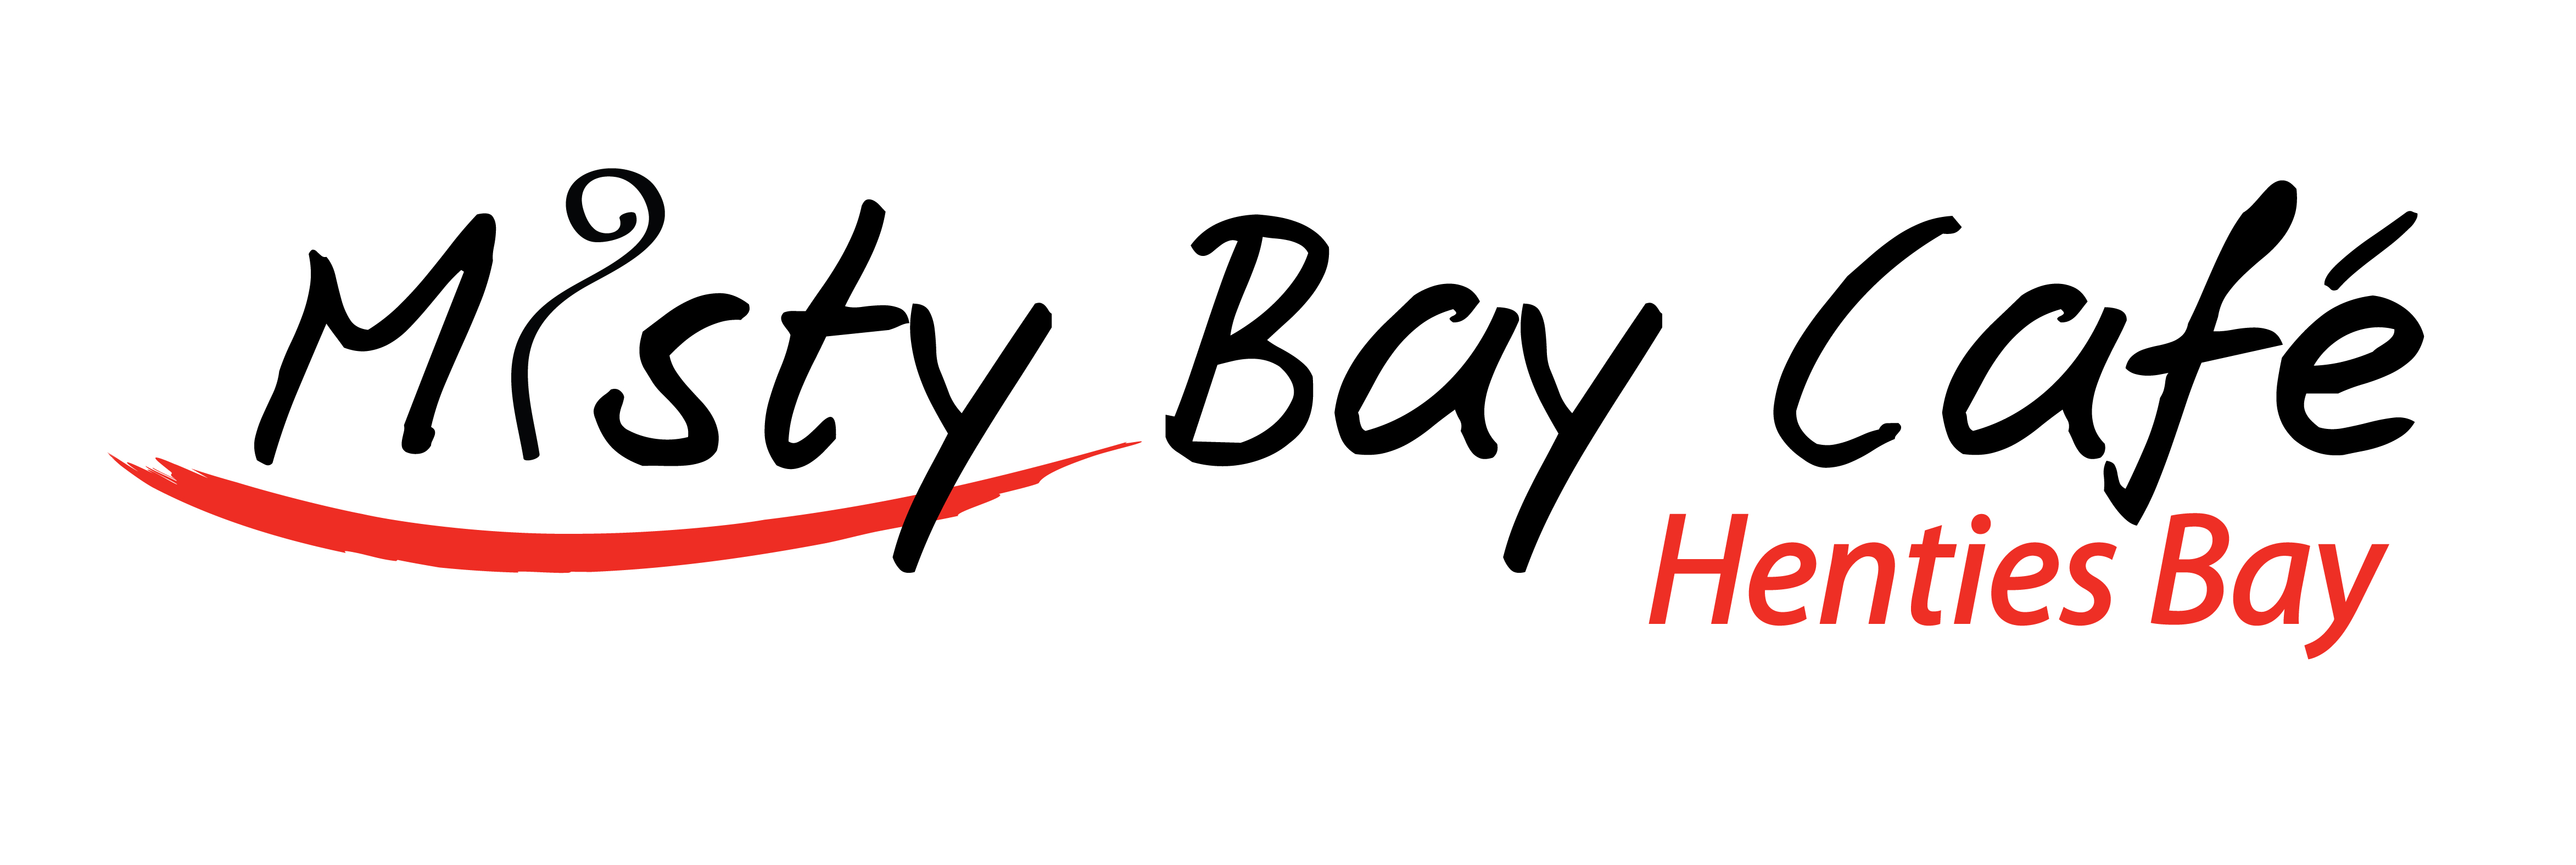 misty-bay-cafe-logo